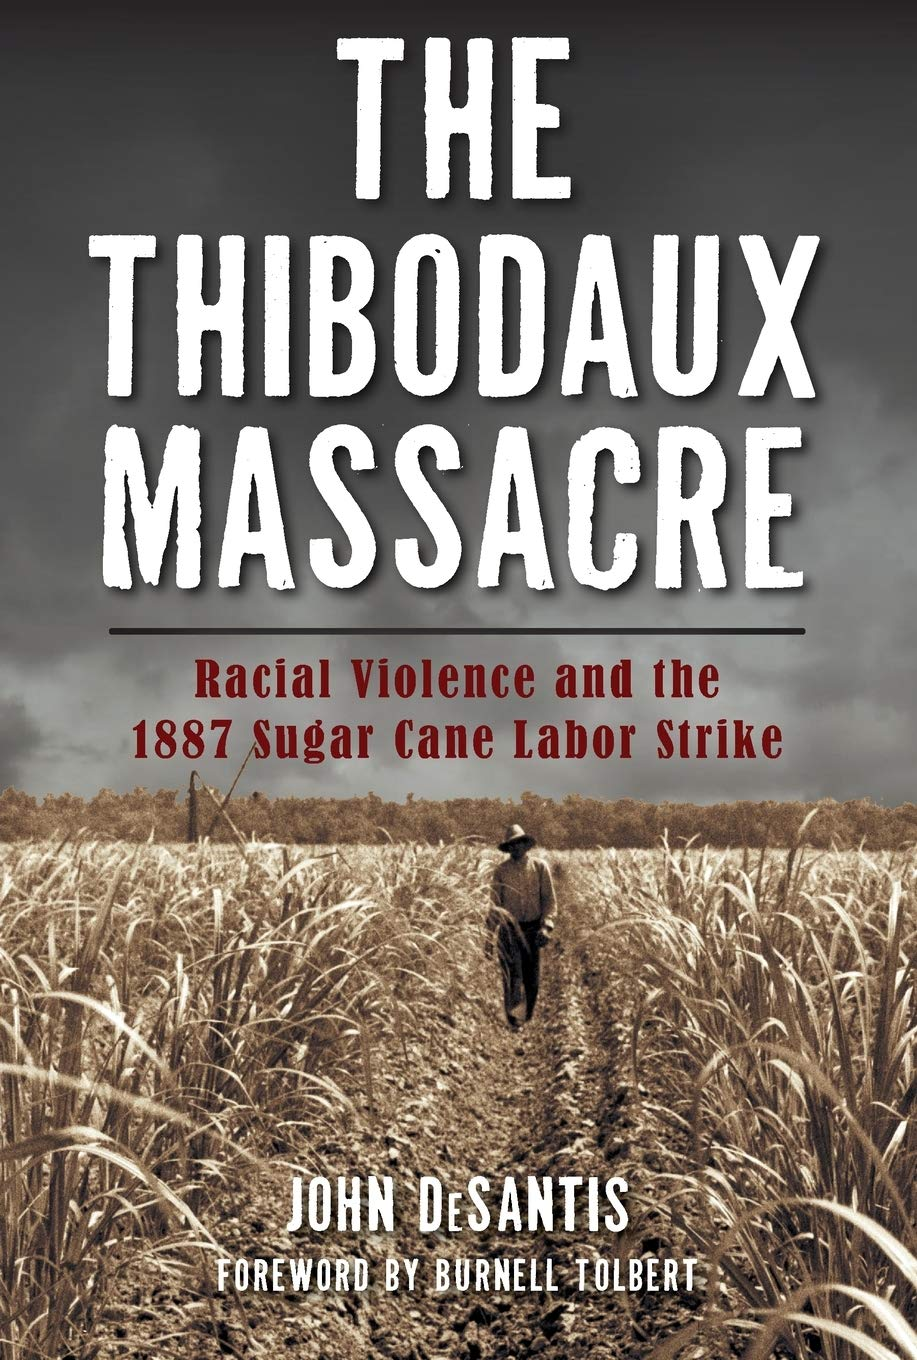 The Thibodaux Massacre: Racial Violence and the 1887 Sugar Cane Labor Strike